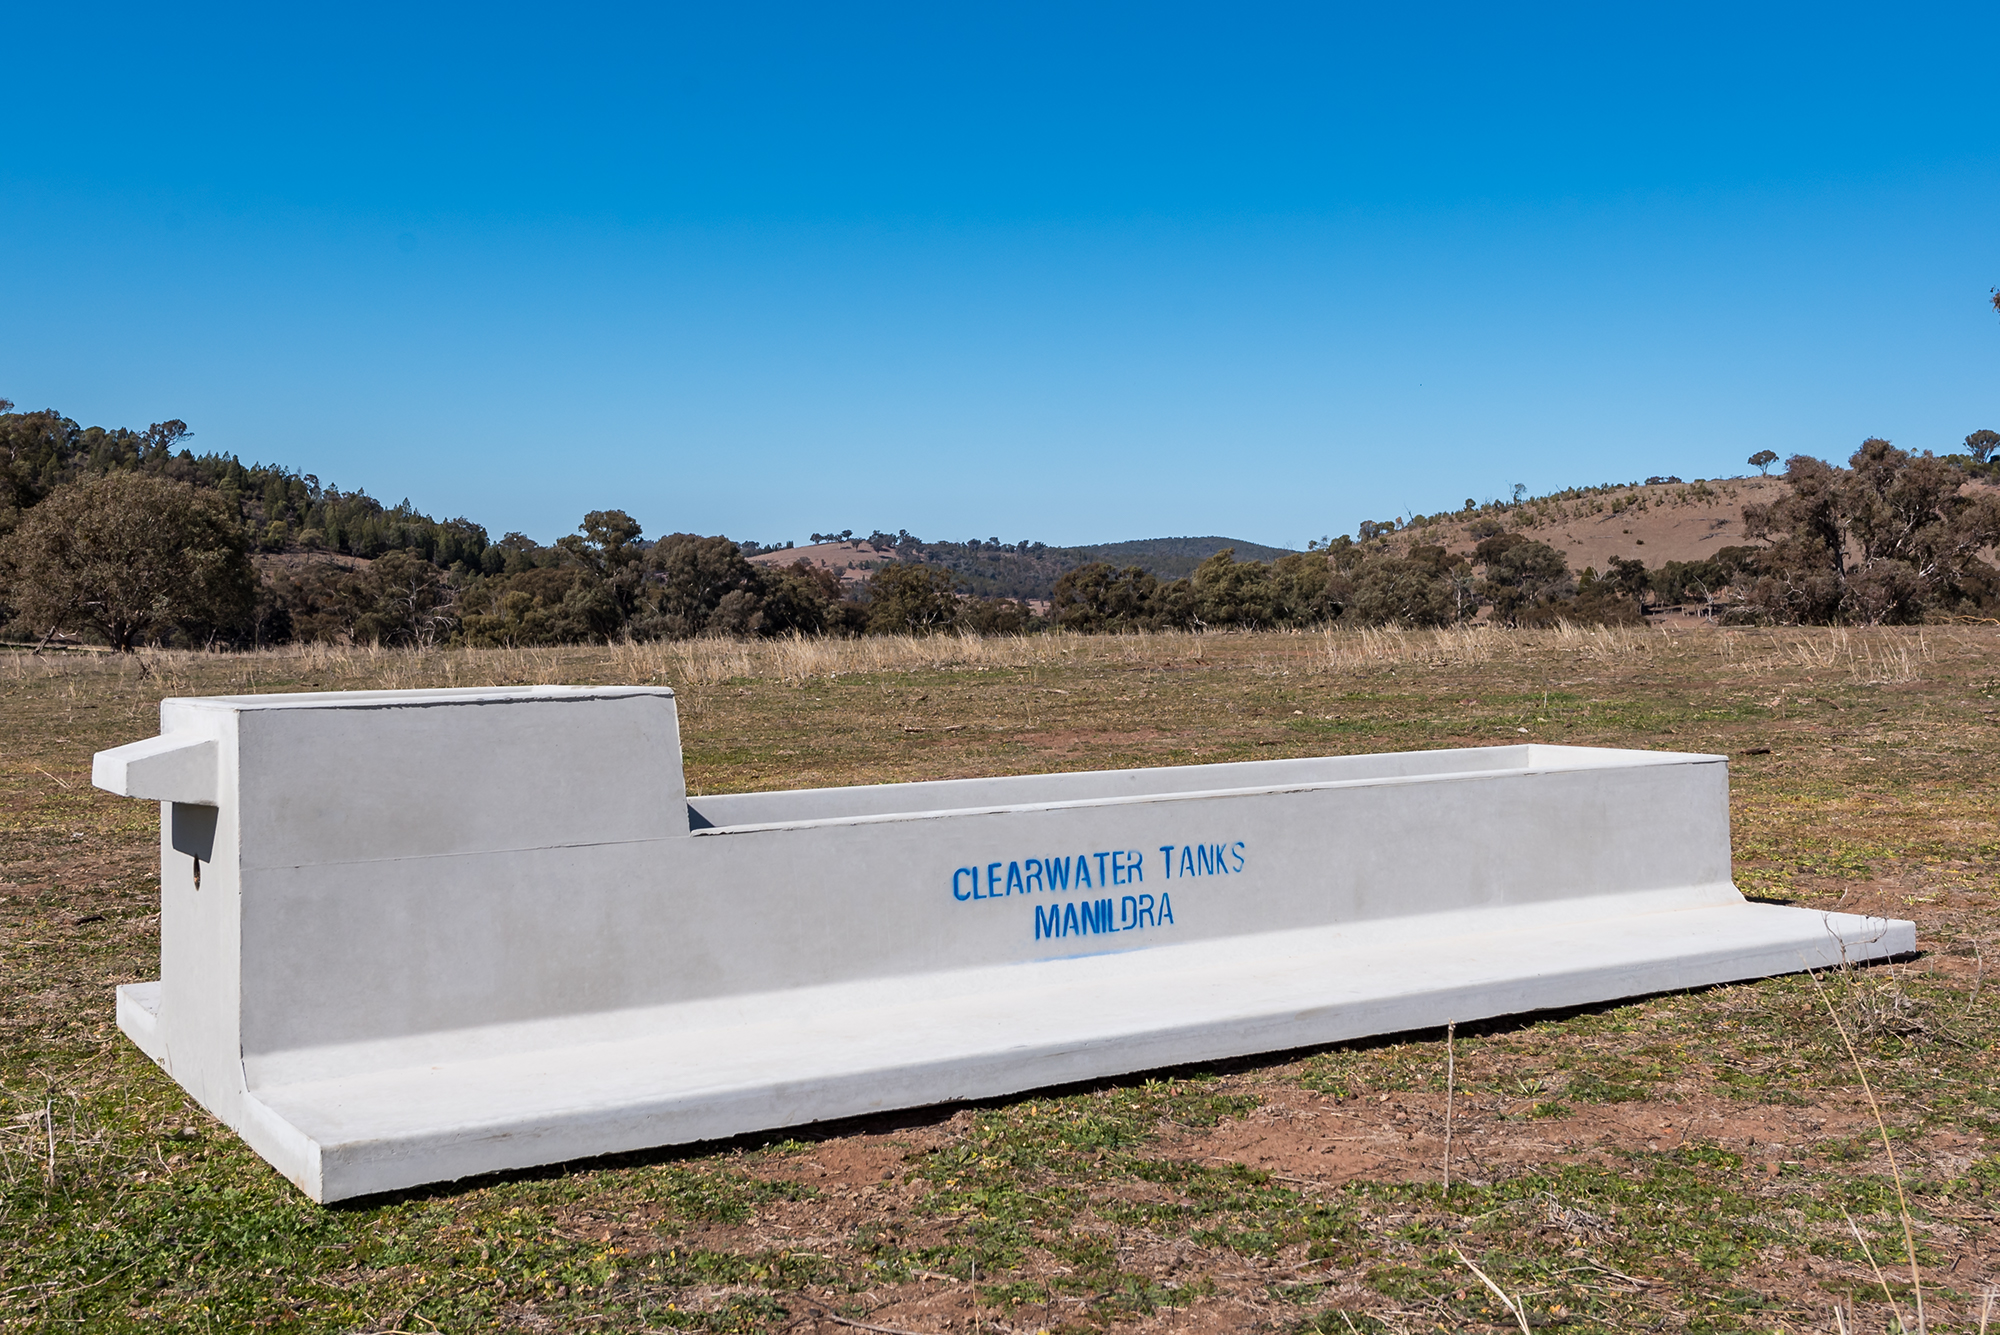 about our troughs - ClearWater Tanks have designed and manufactured our own range of Concrete Stock Water Troughs. The full range of Concrete Stock Water Troughs are manufactured at our factory in Manildra.